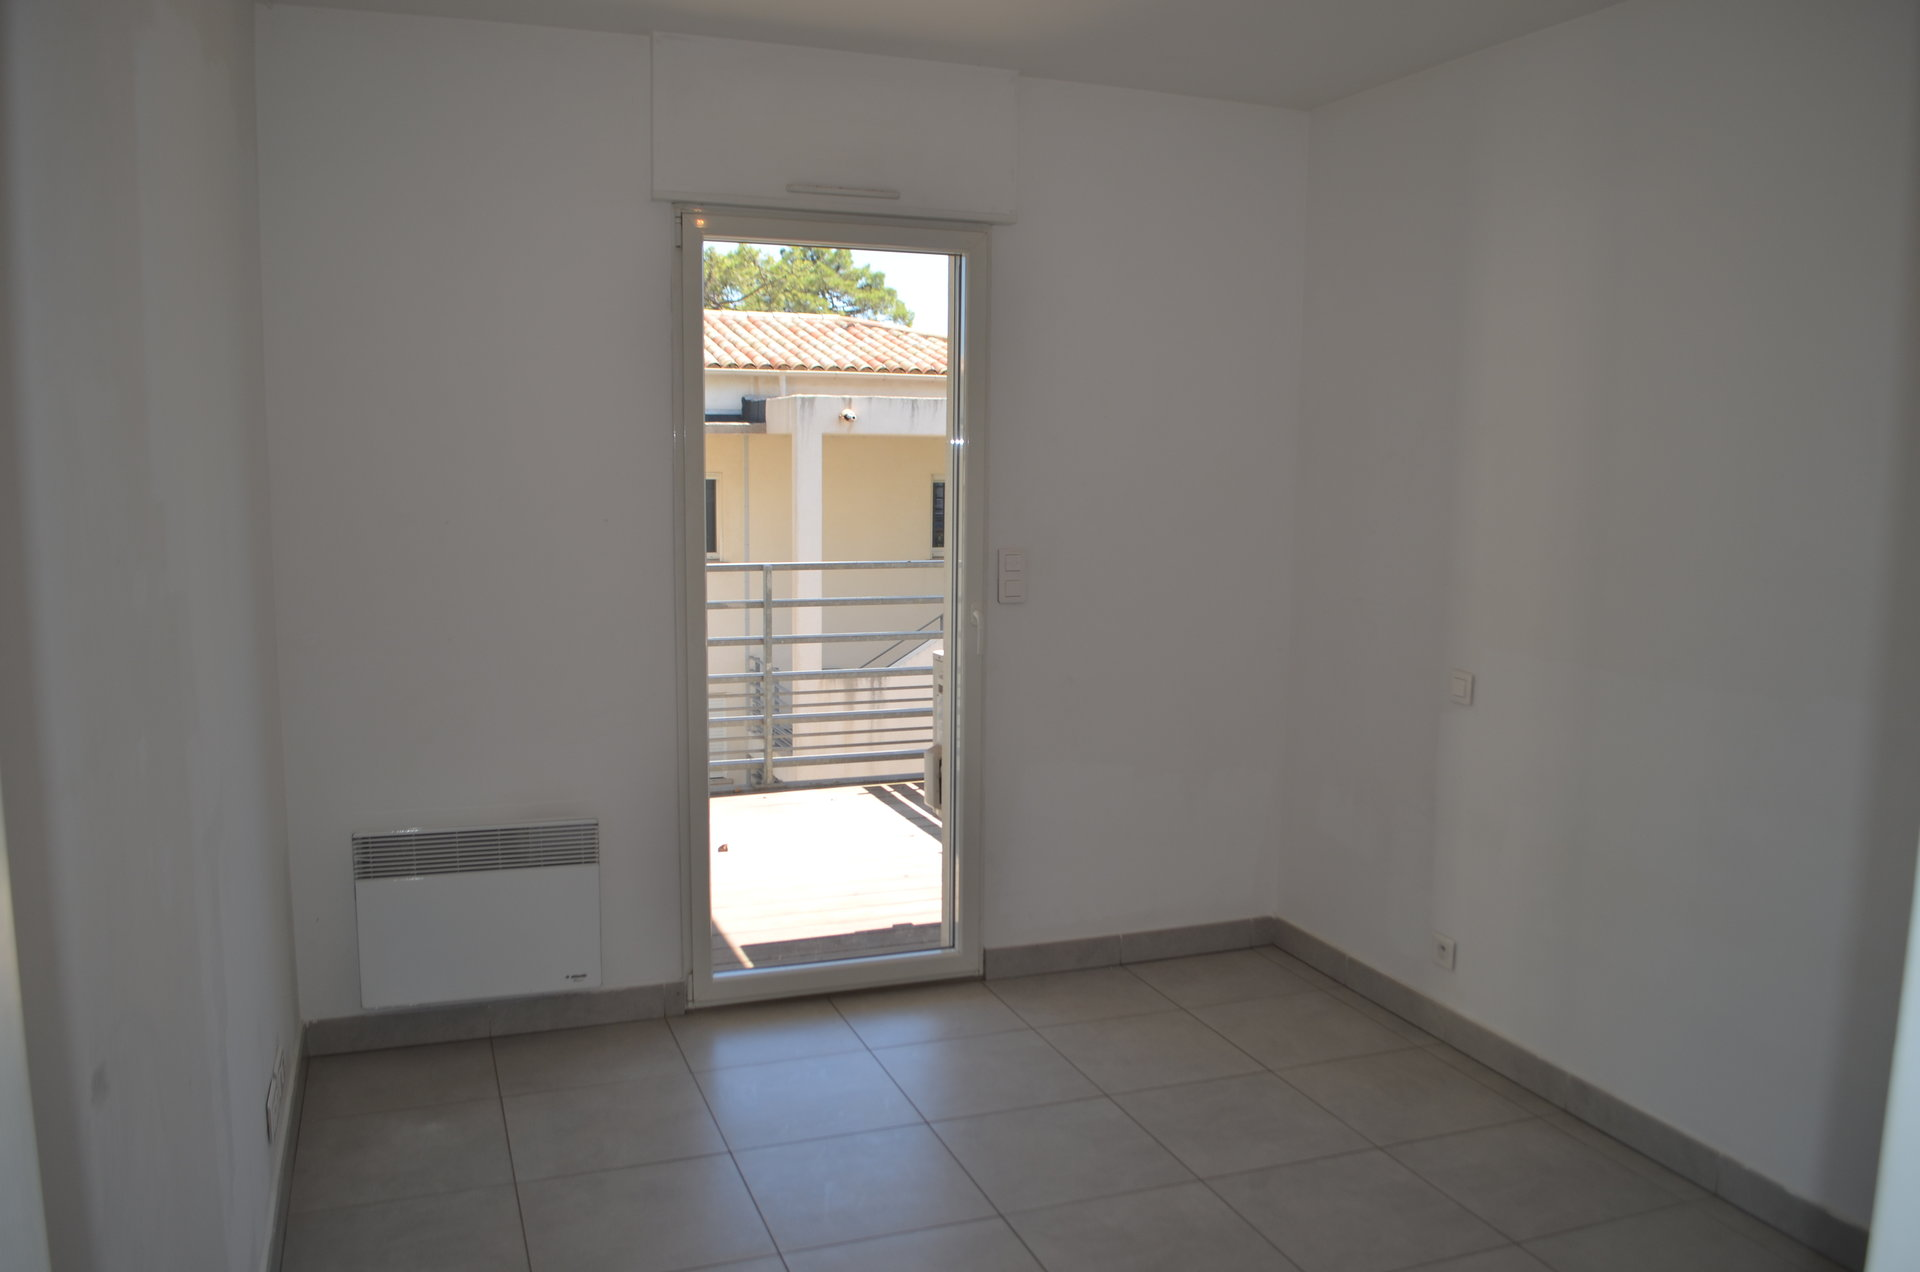 Appartement 4P 85M2 avec terrasse et parking